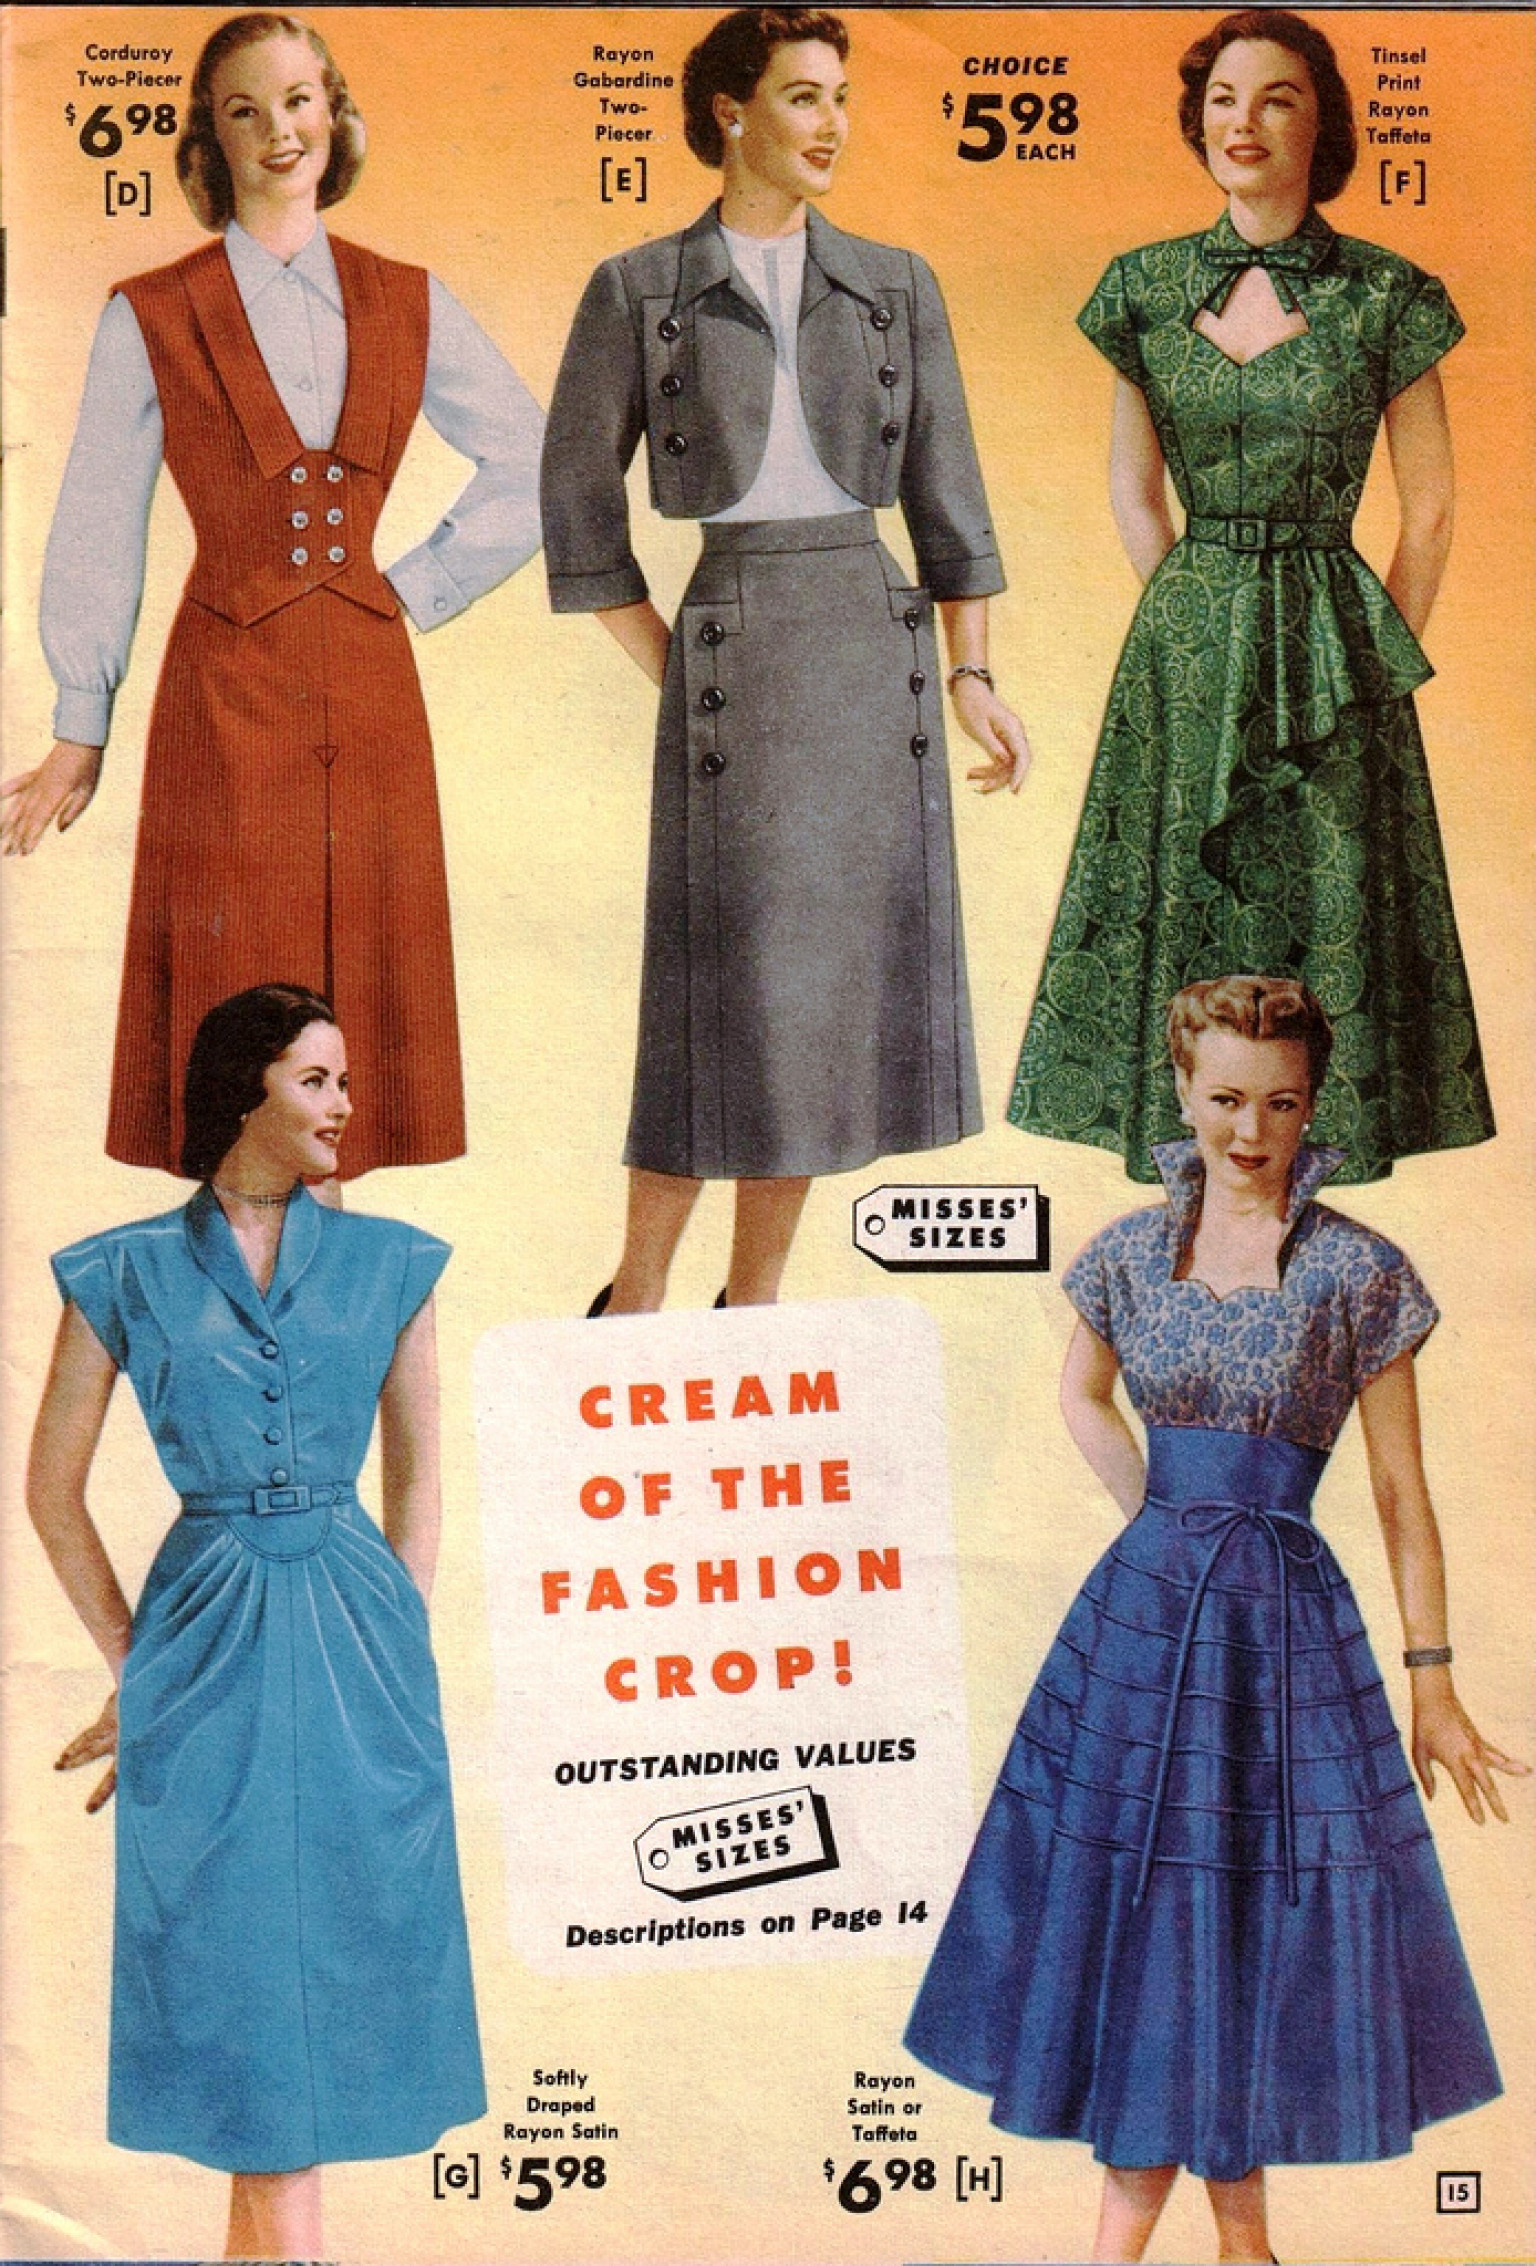 7 ways your grandmother dressed better than you